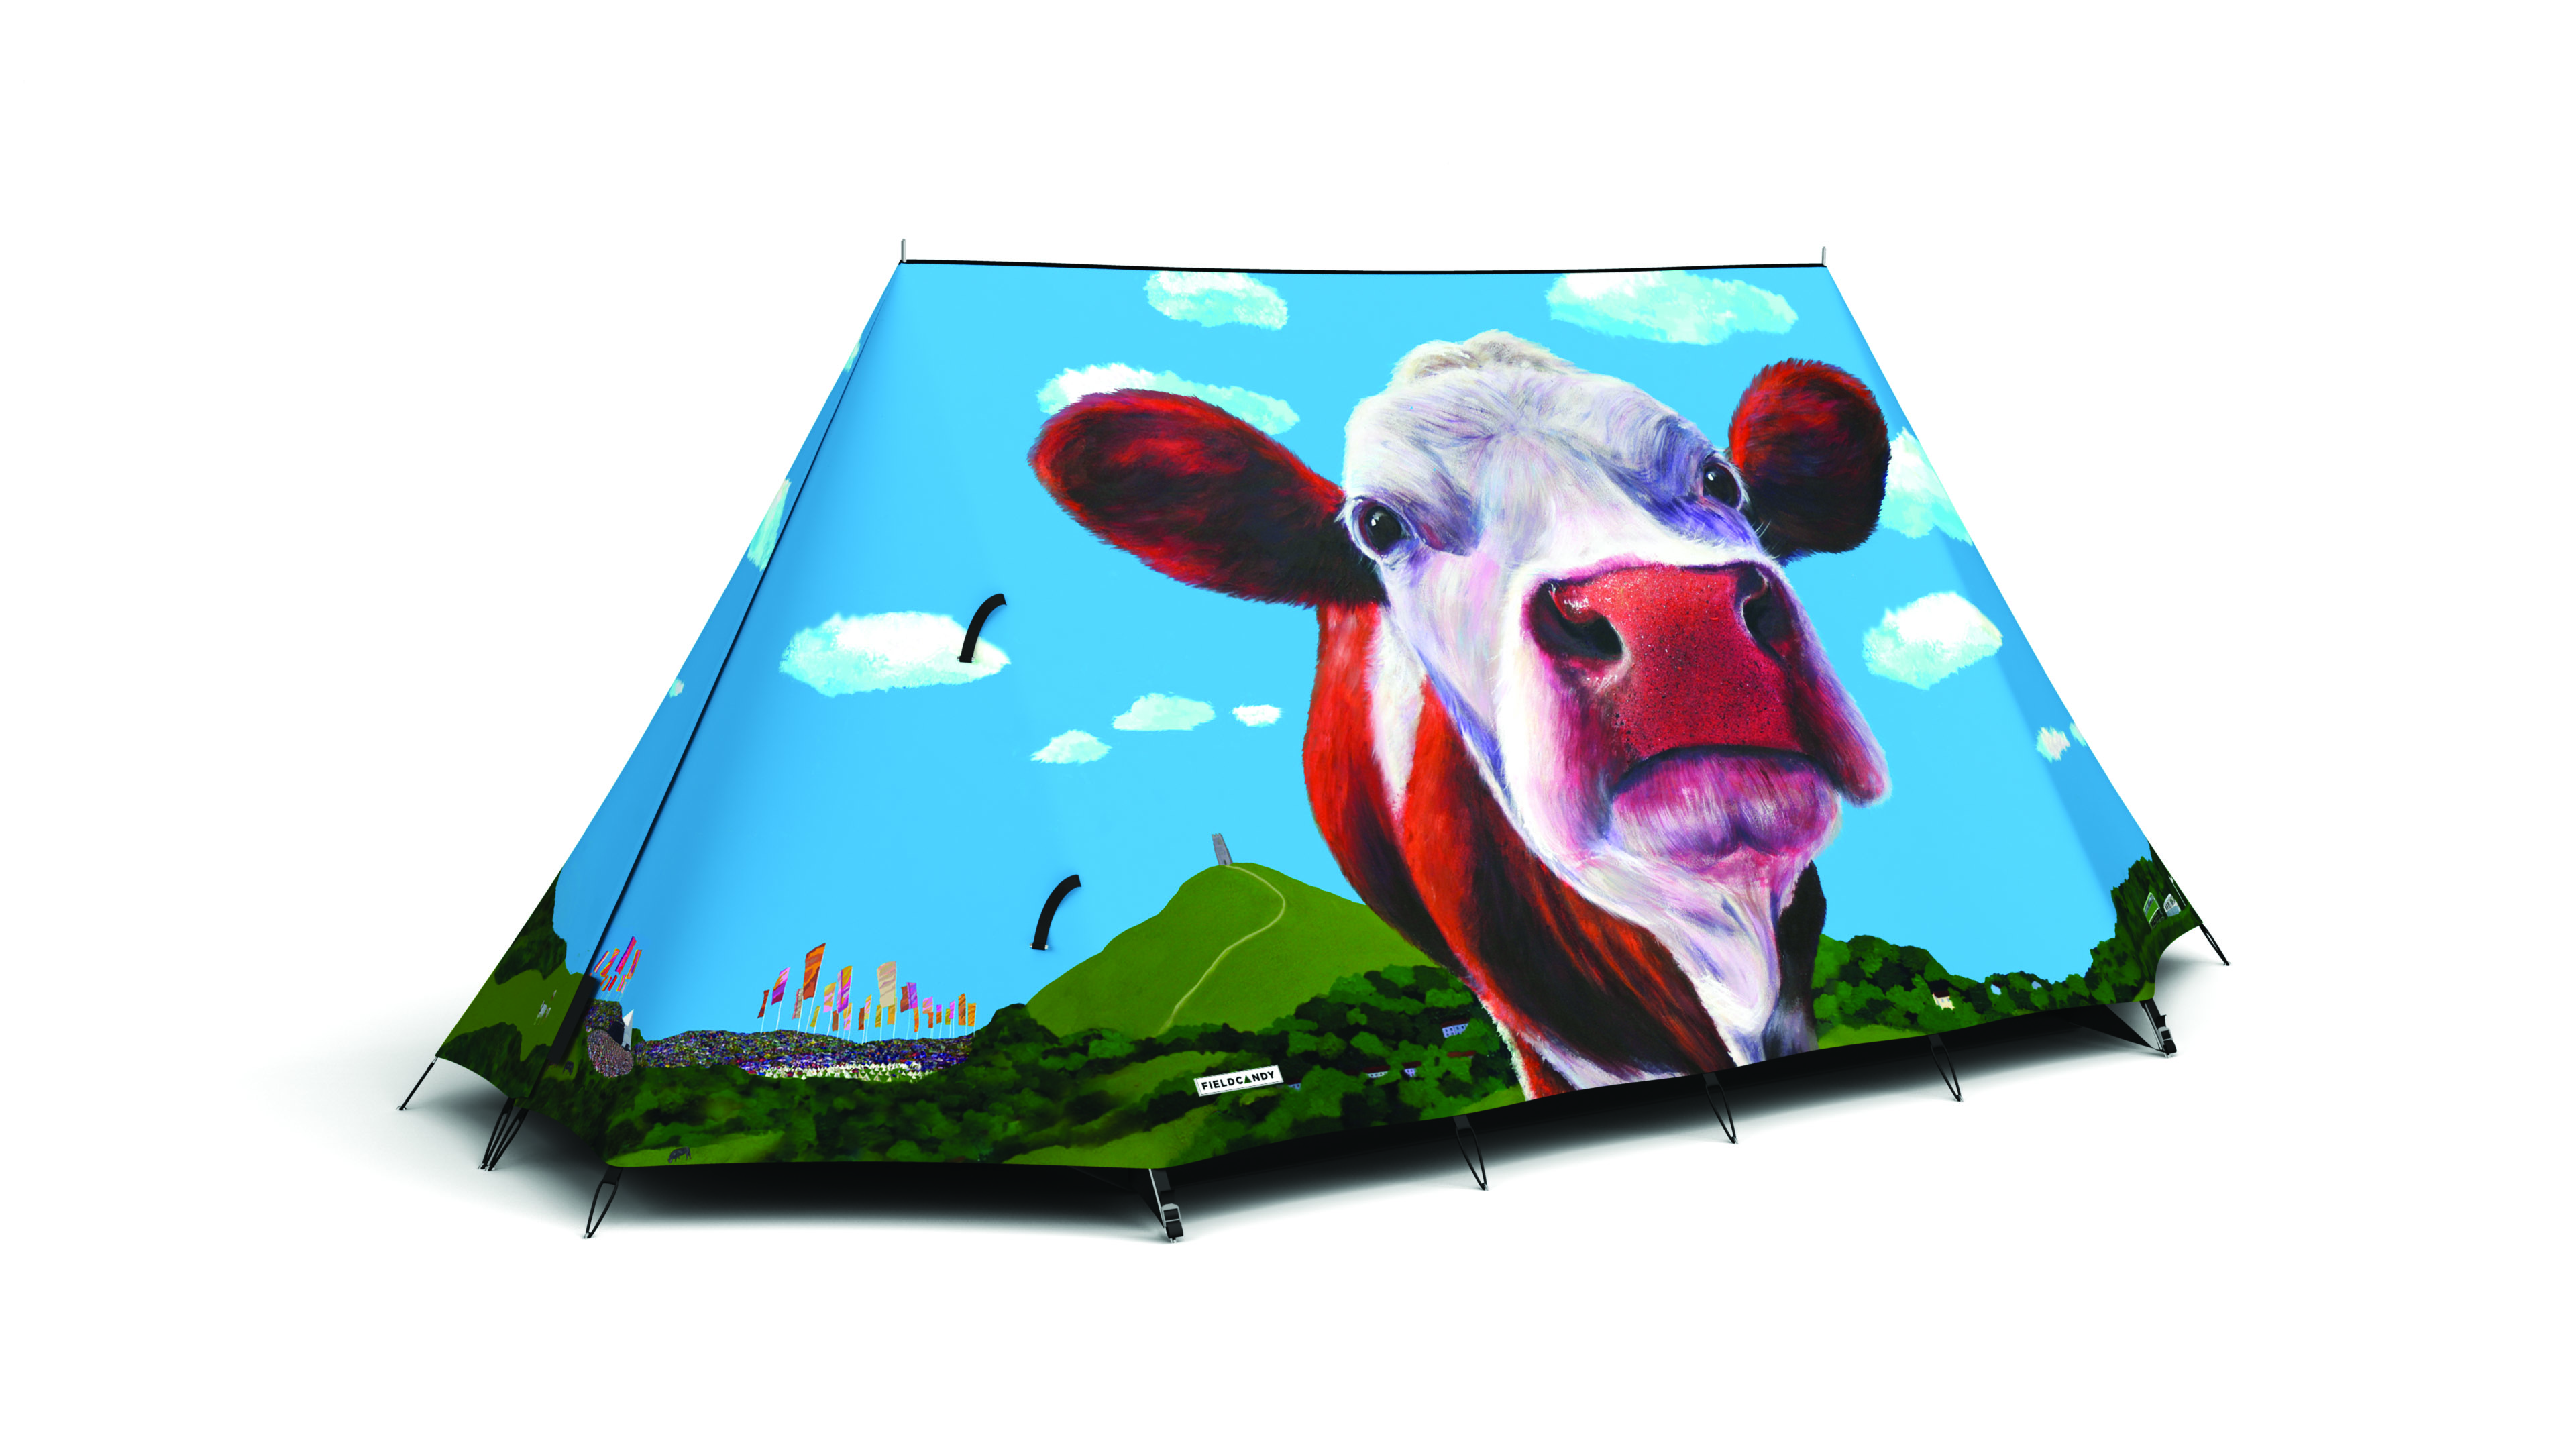 FieldCandy Telt Glasto cows